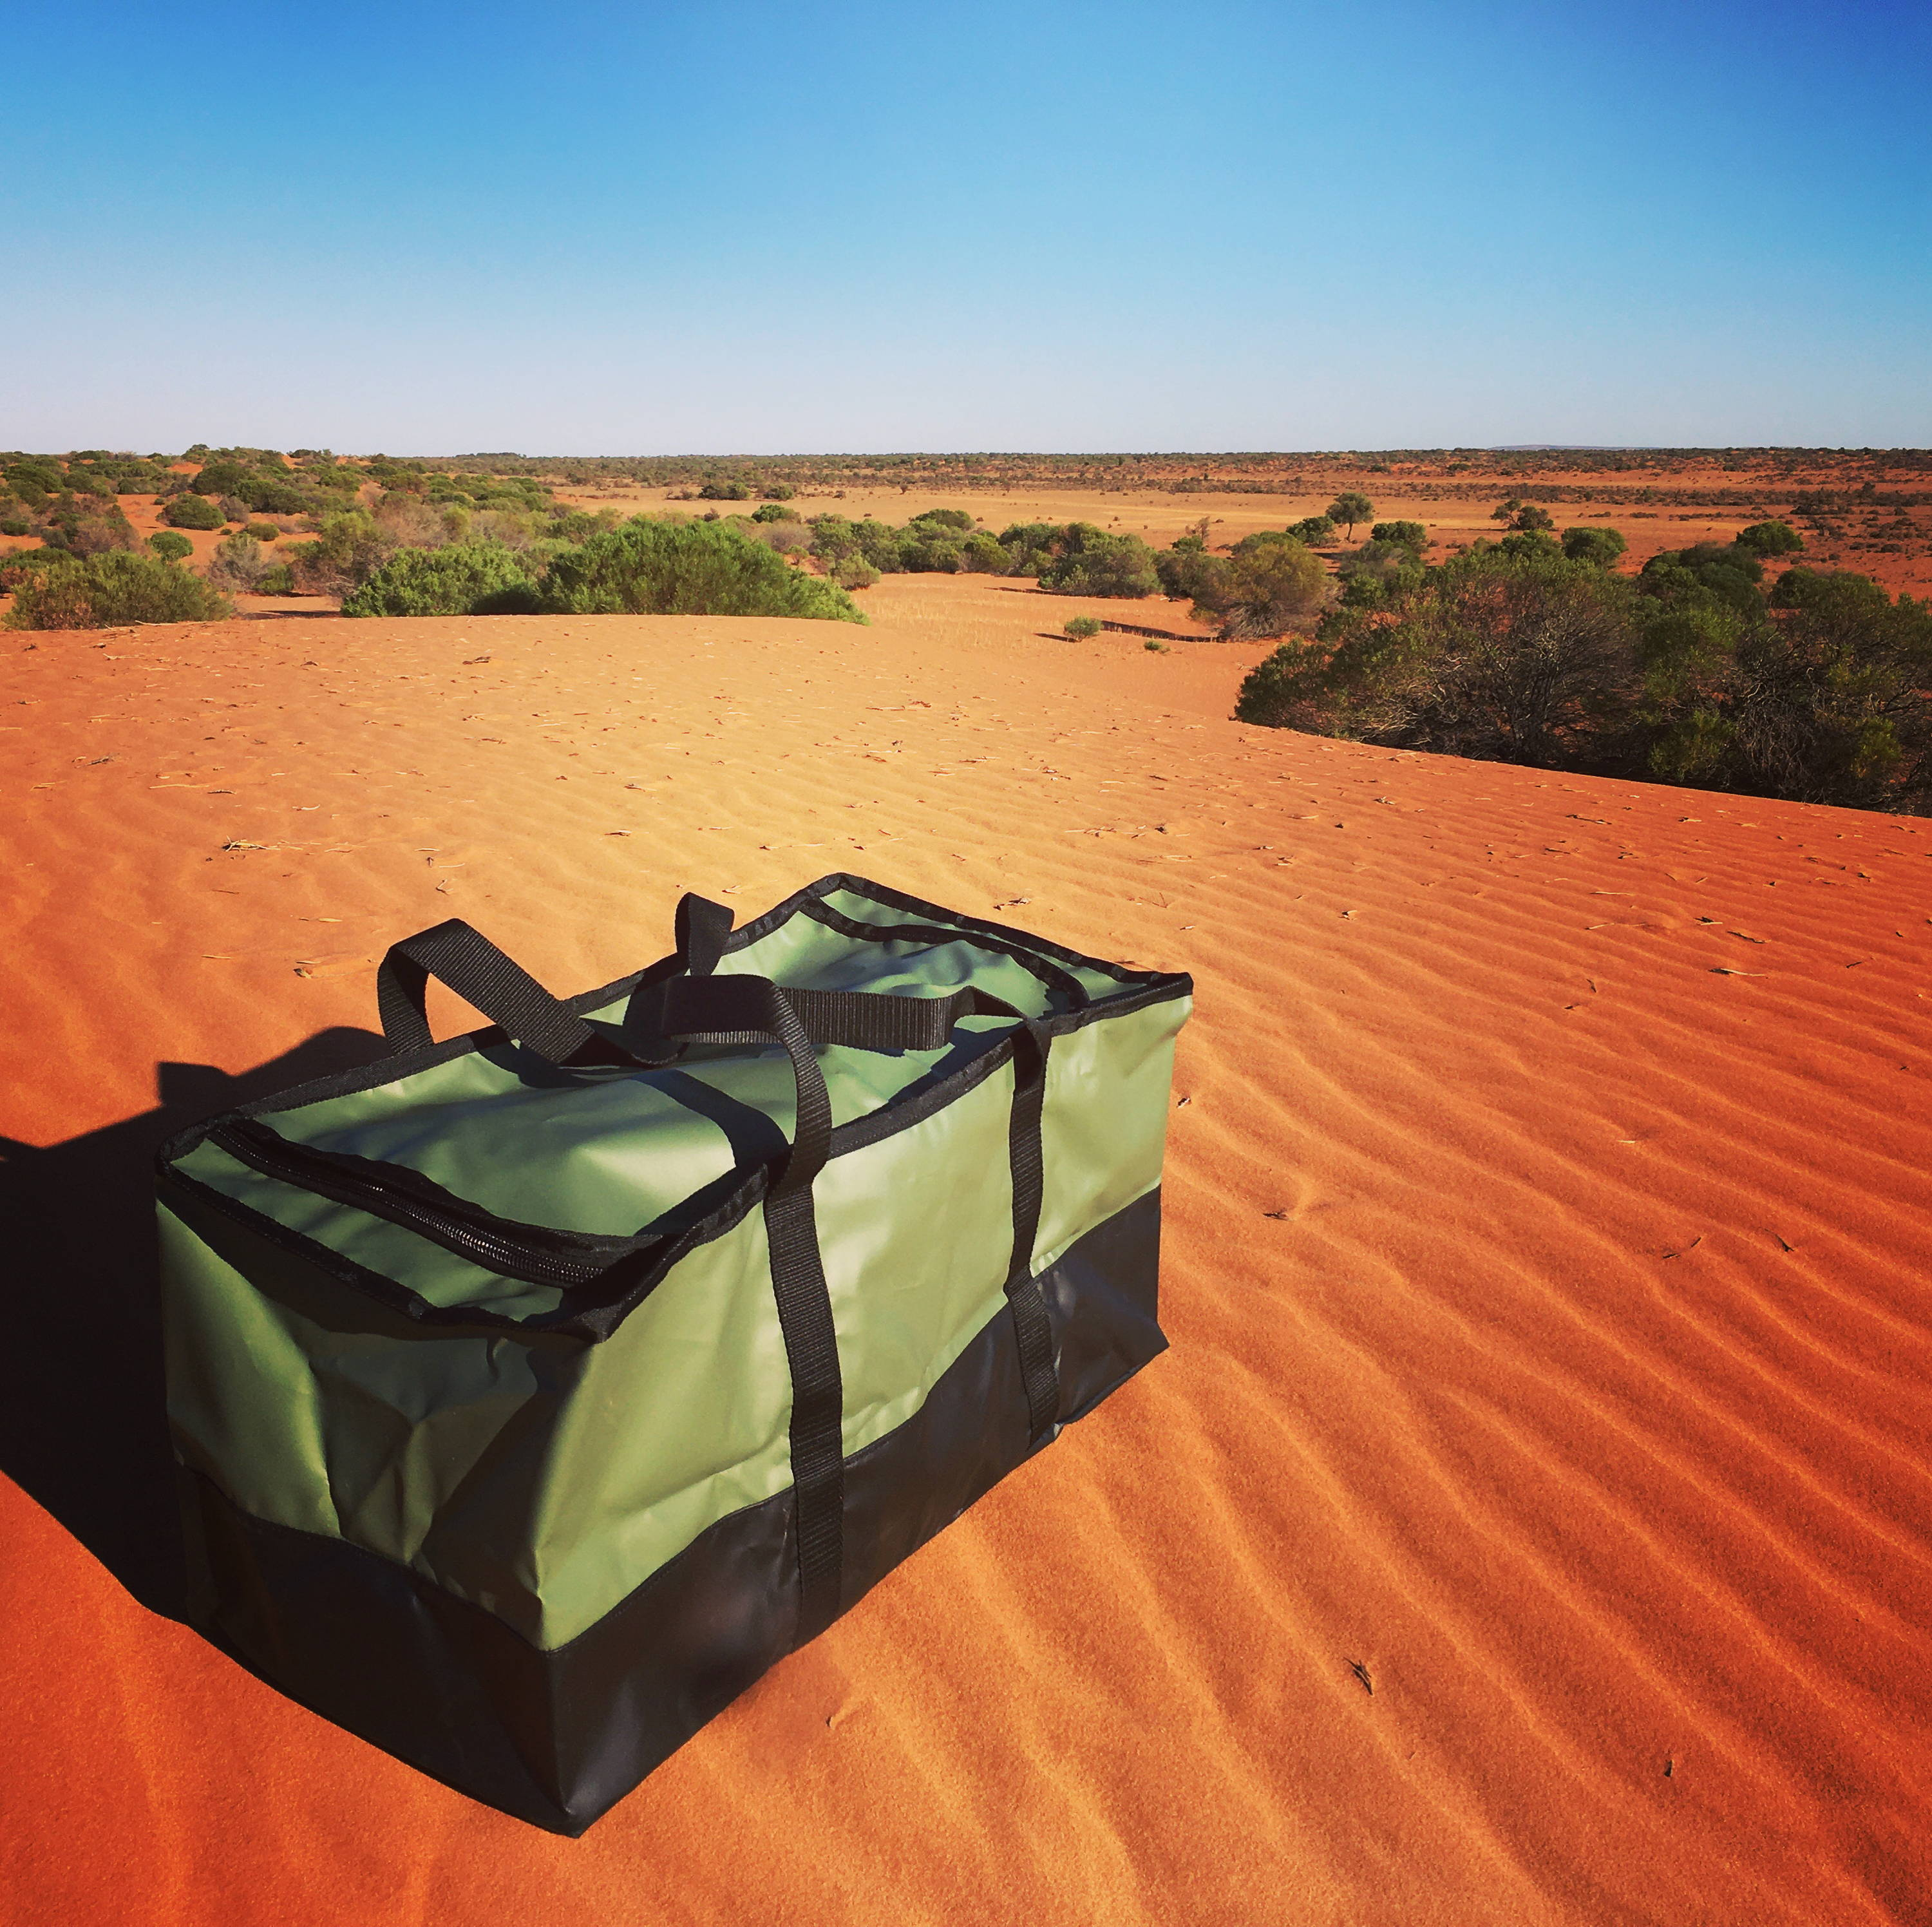 Camping gear bags for caravans and campers